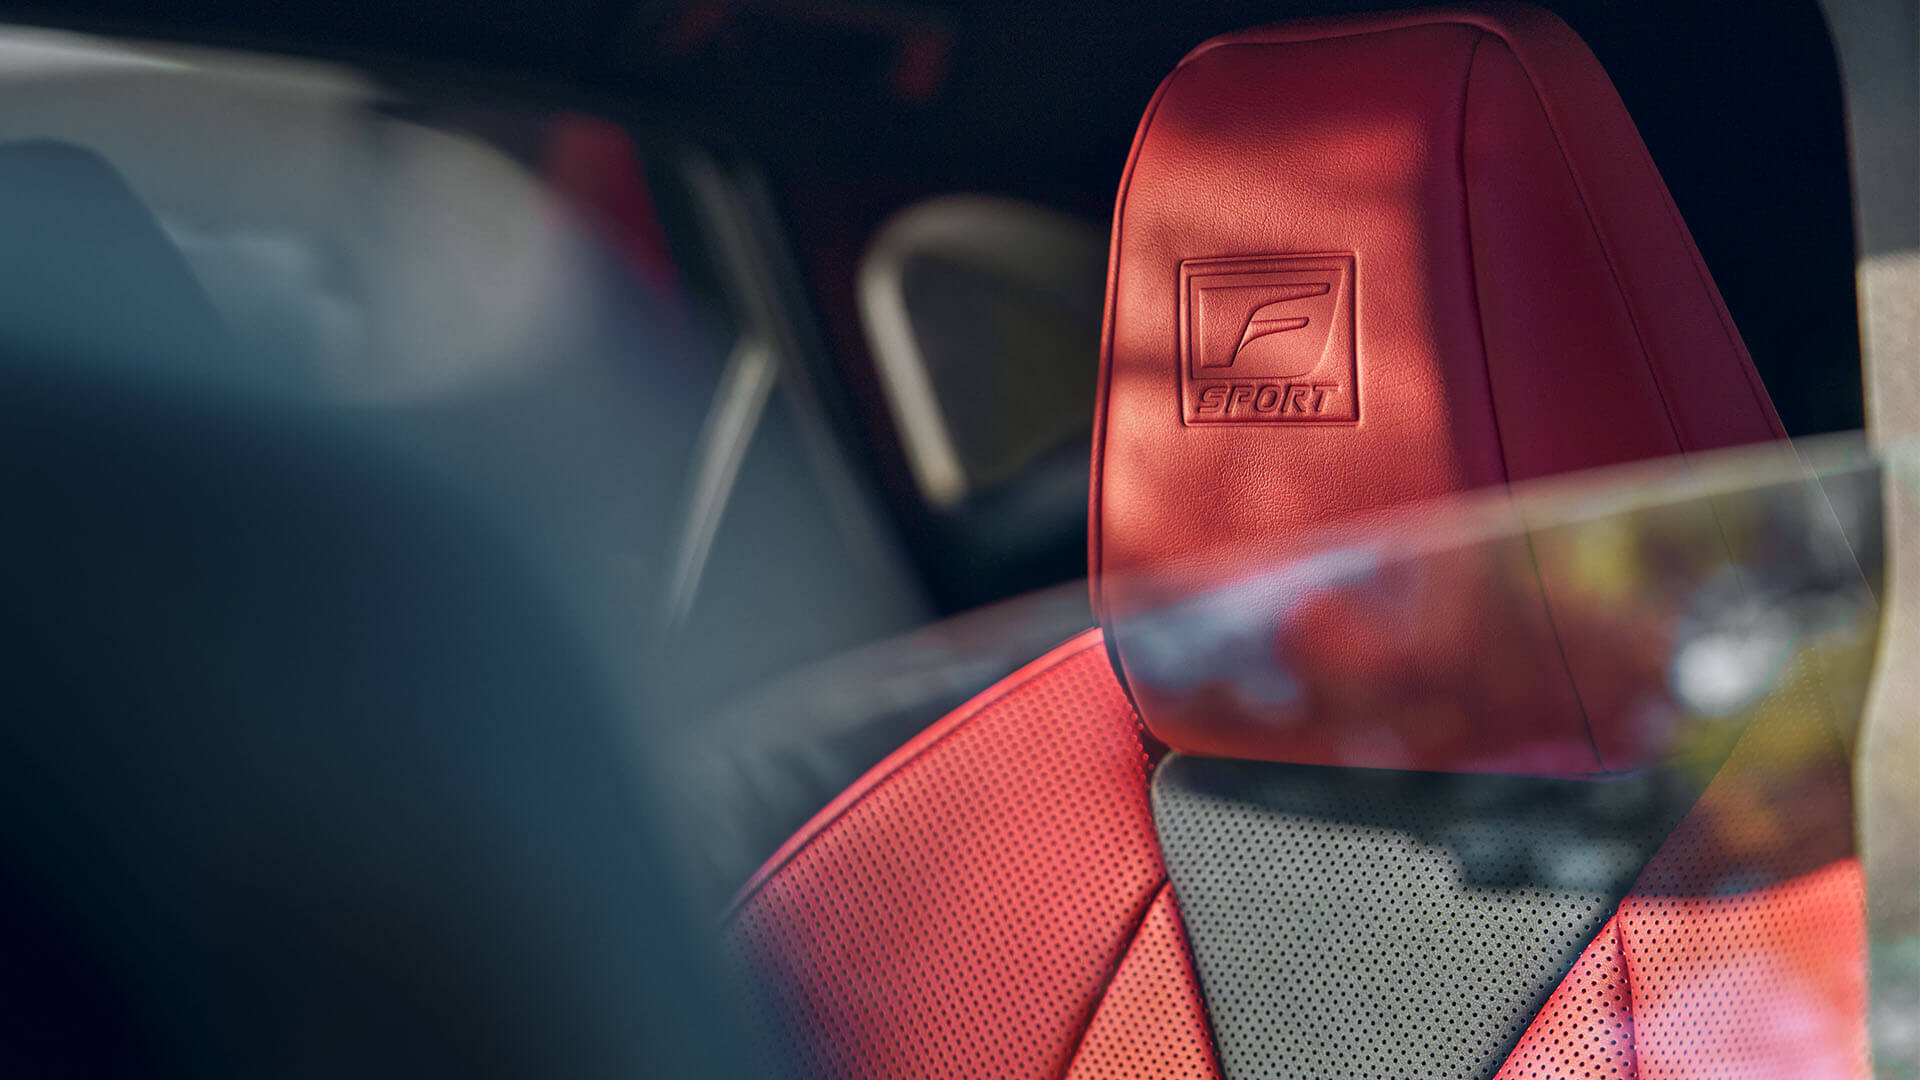 2021 lexus nx experience interior front newly designed seats